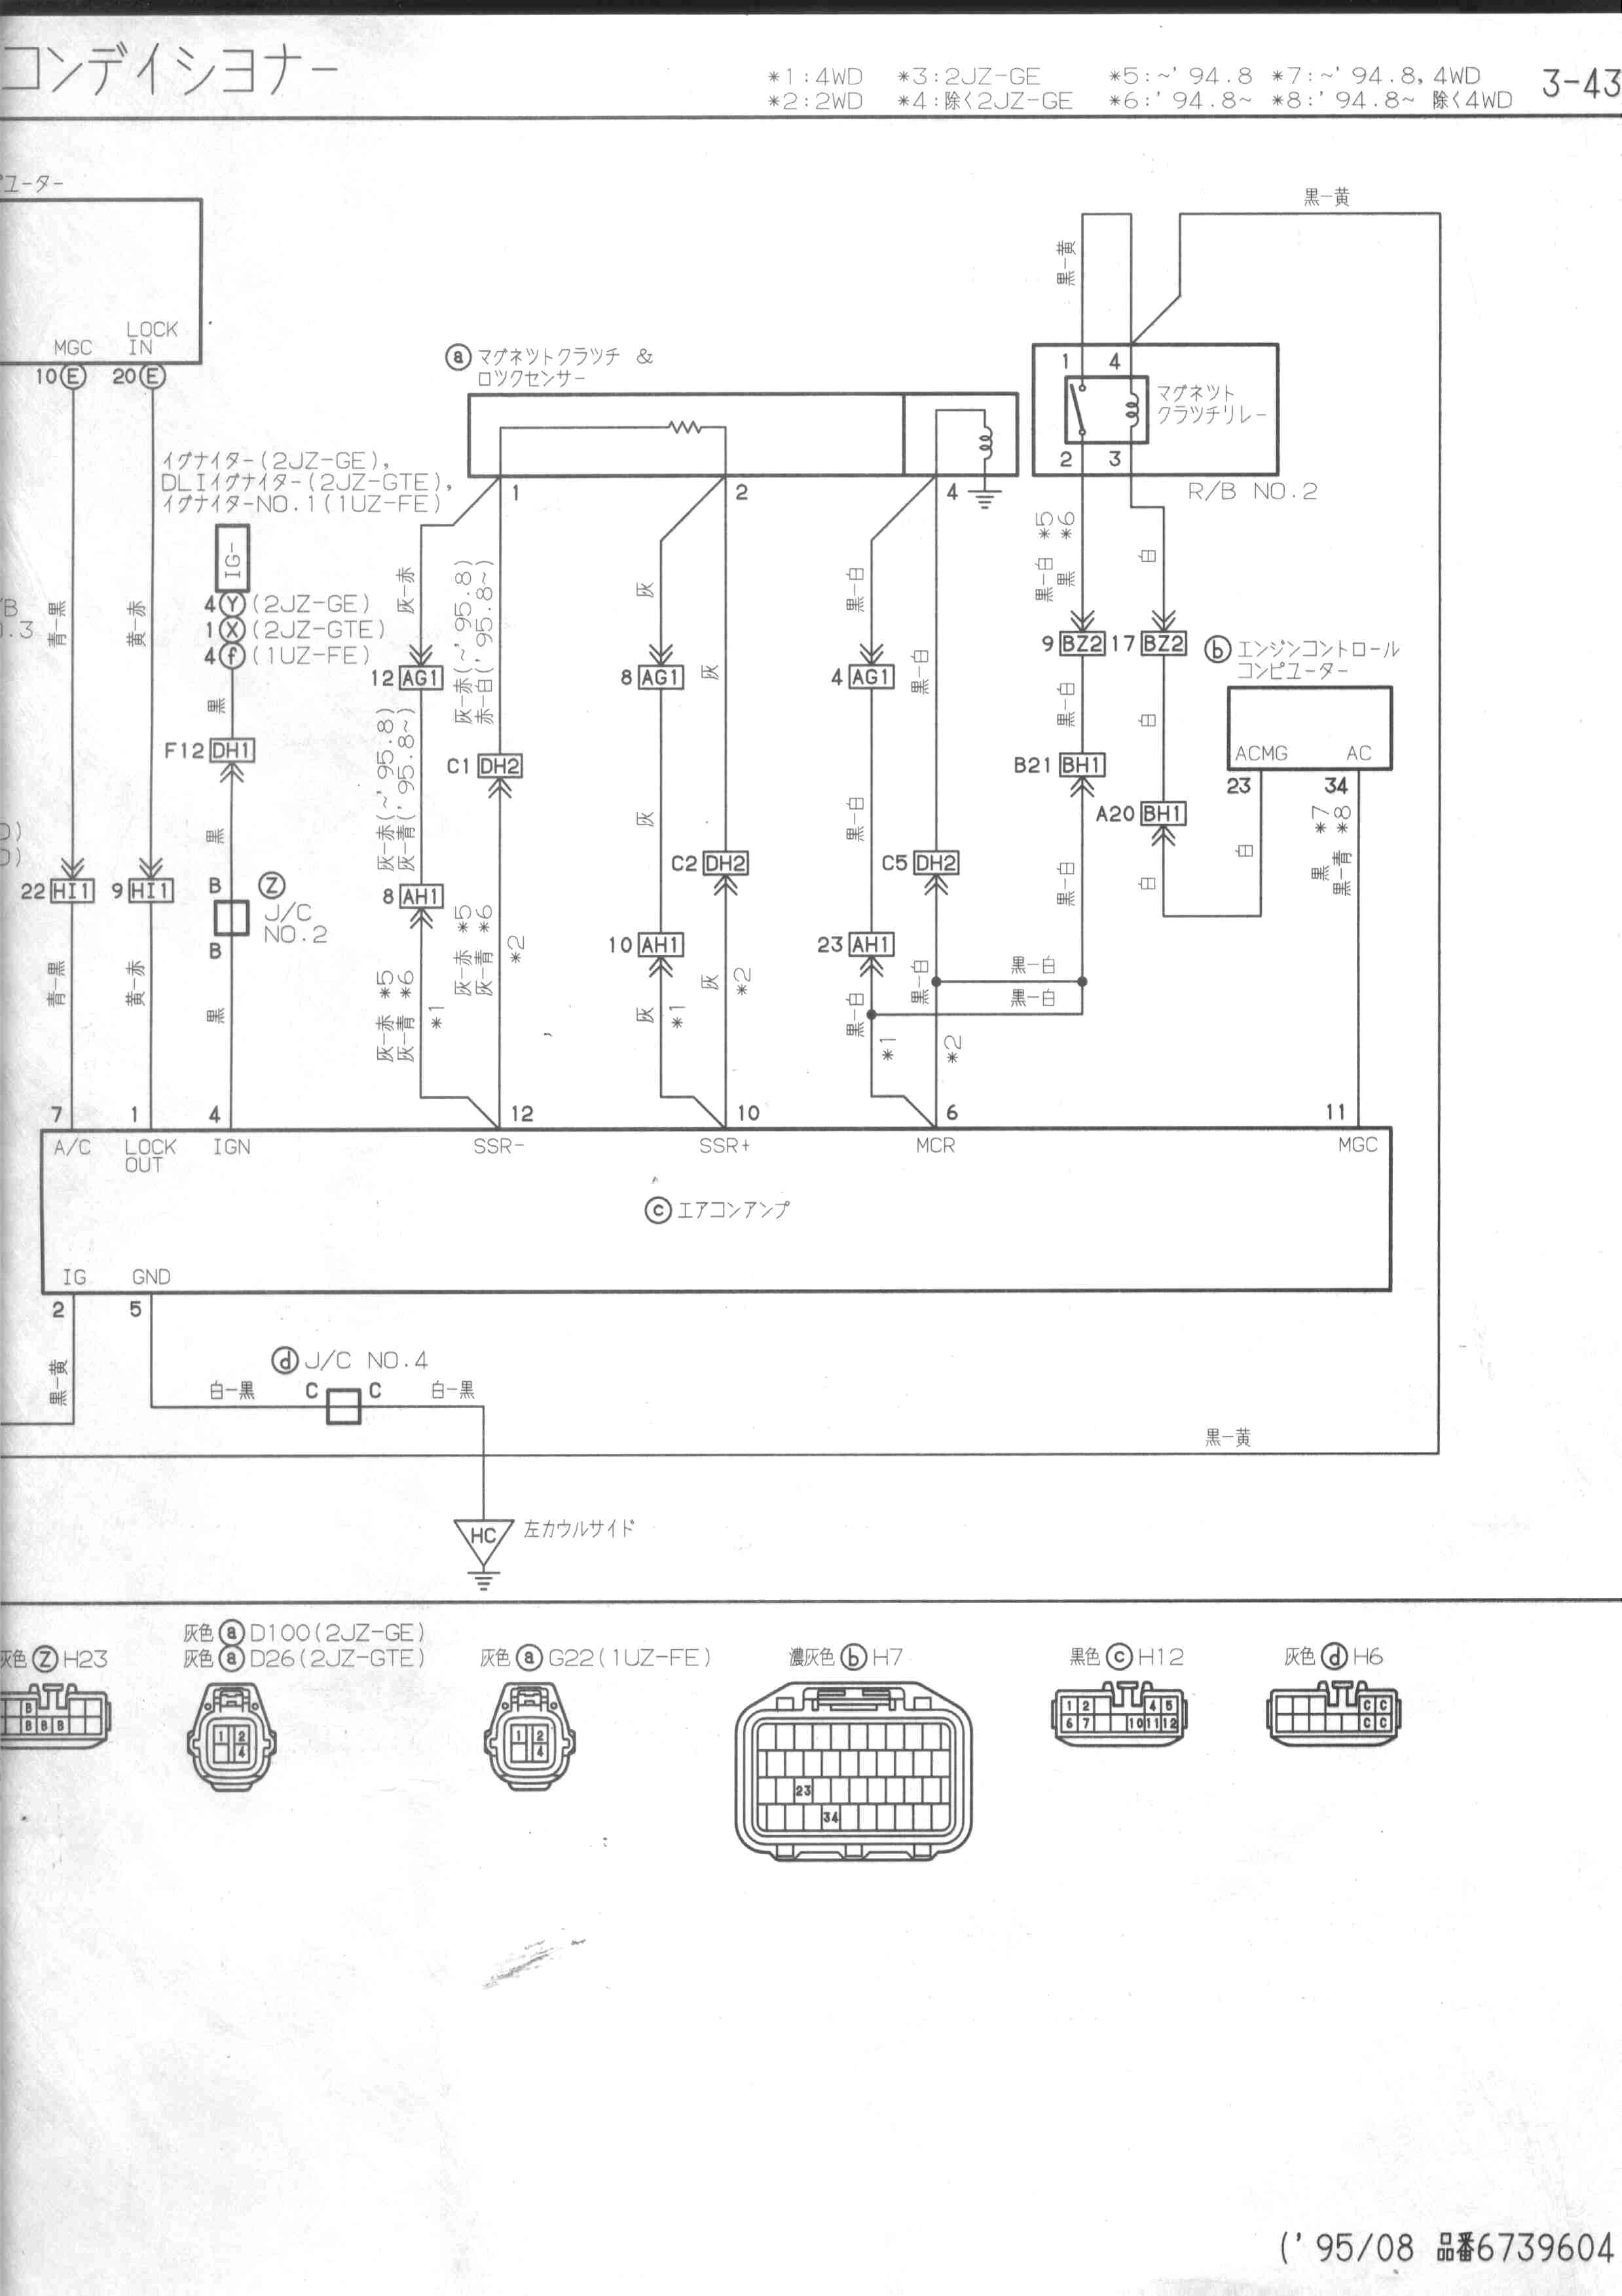 kit for power window wiring diagram wk 1617  mitsubishi power window wiring diagram free diagram  mitsubishi power window wiring diagram